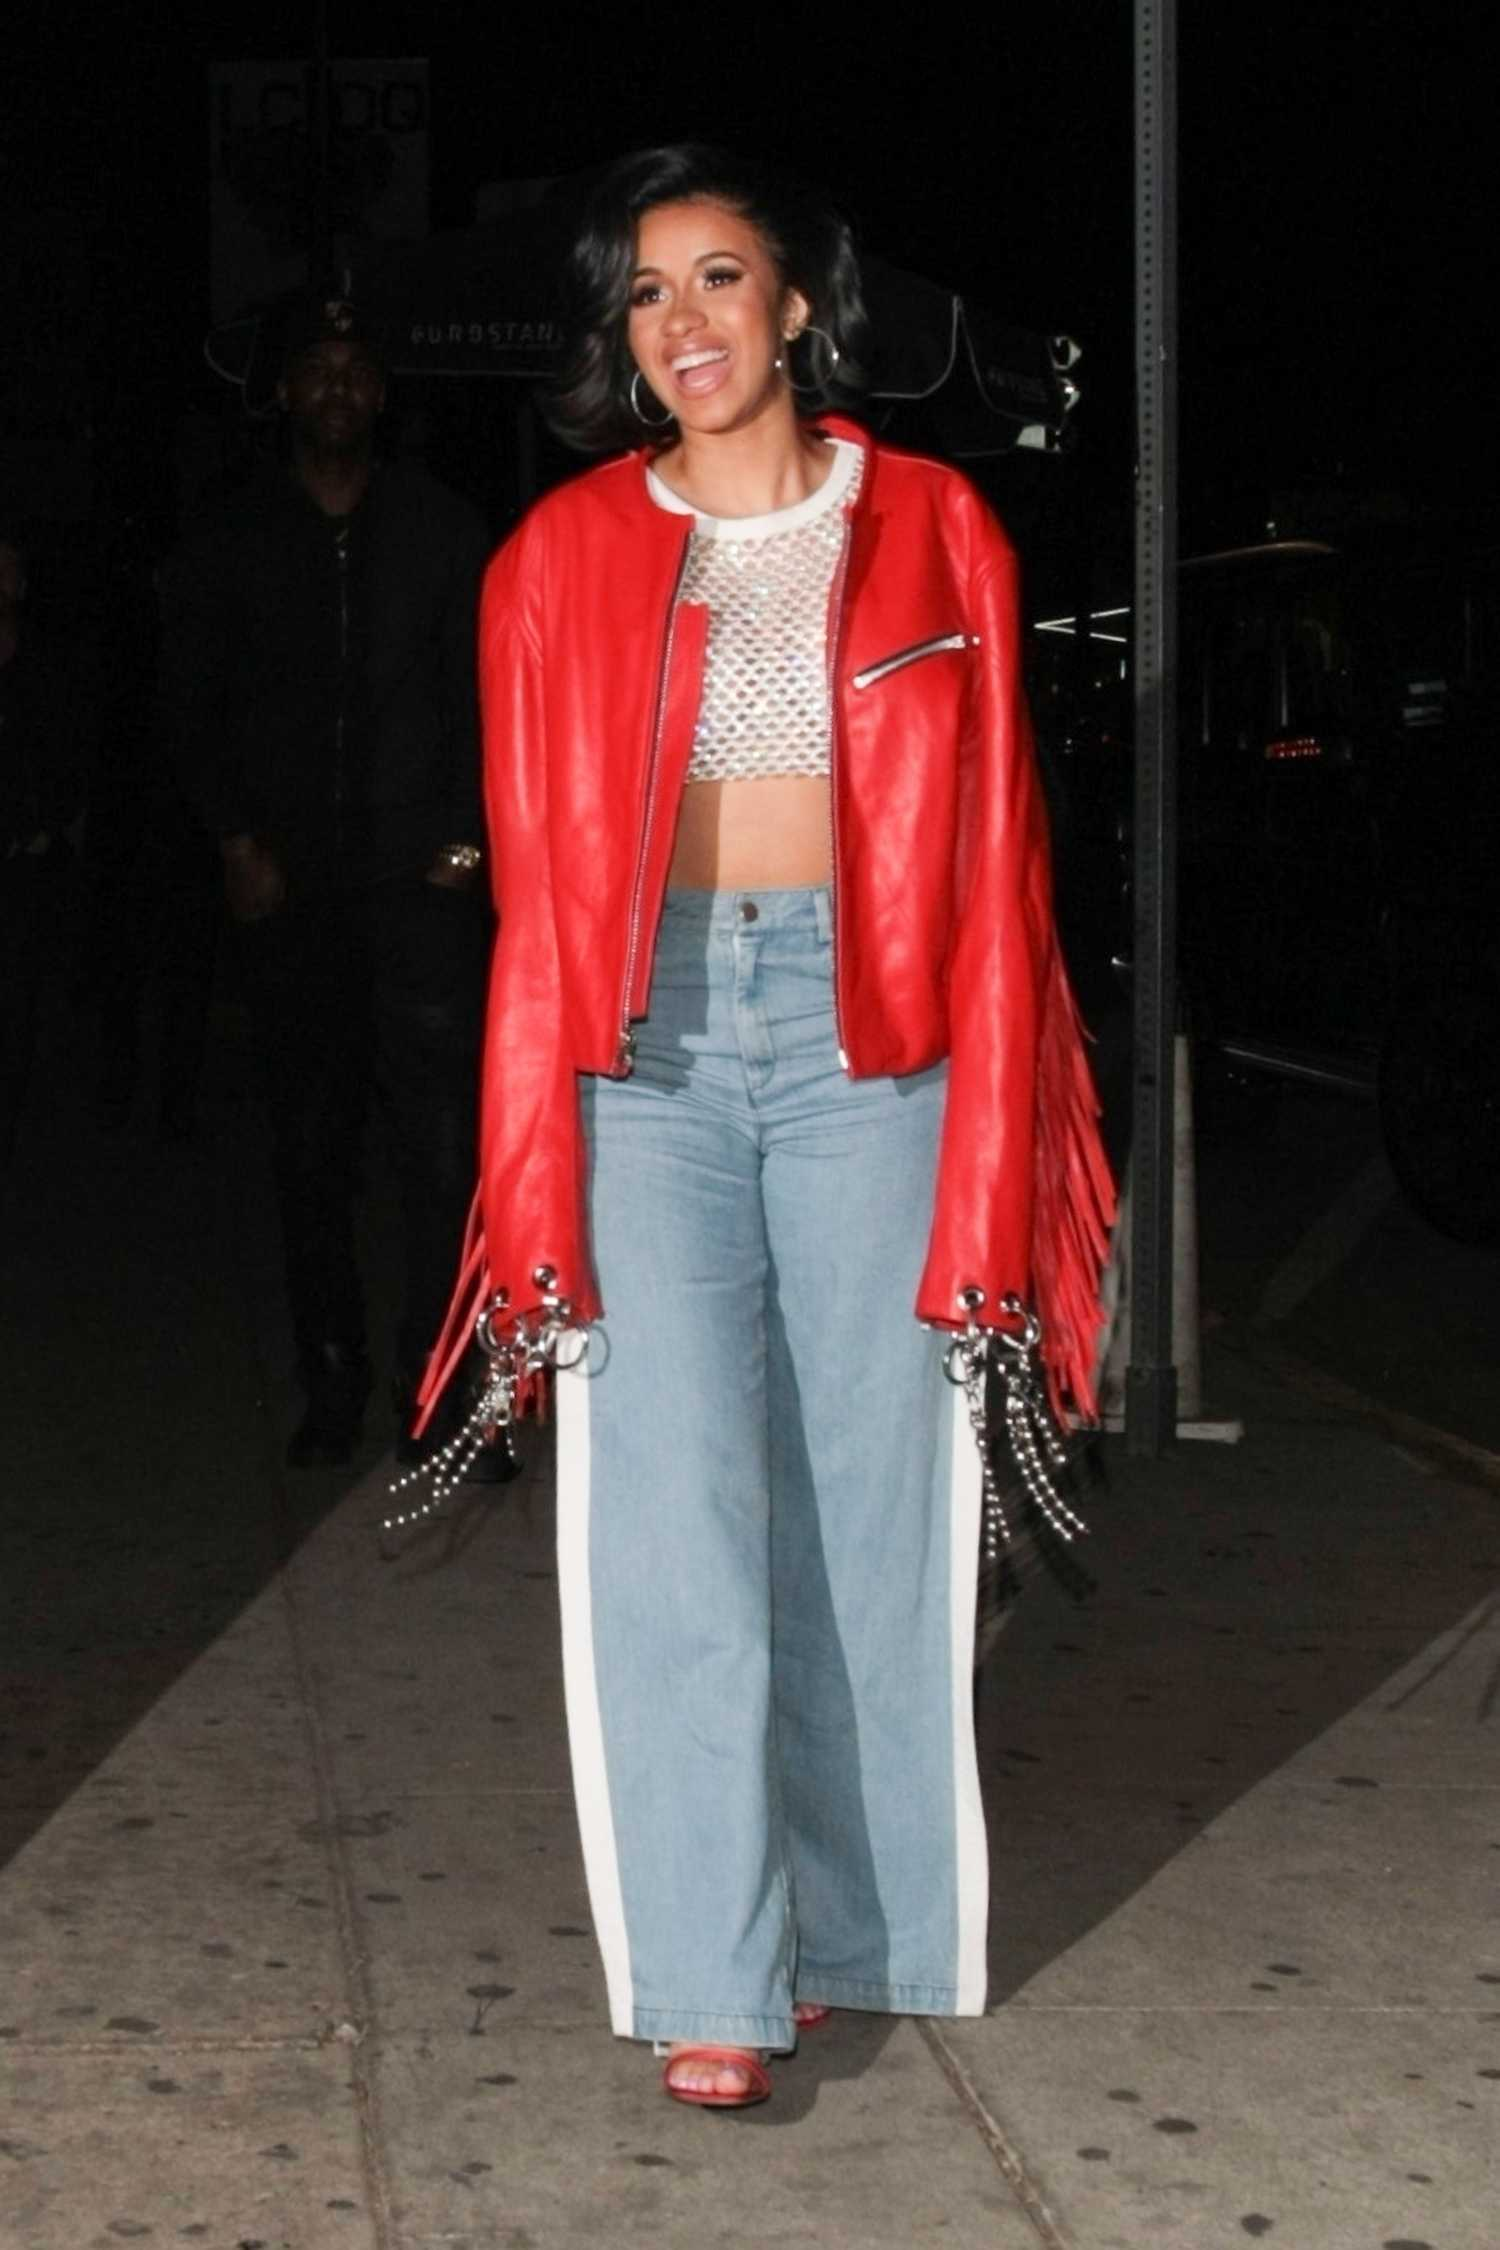 cardi b arrives at the nice guy restaurant in west